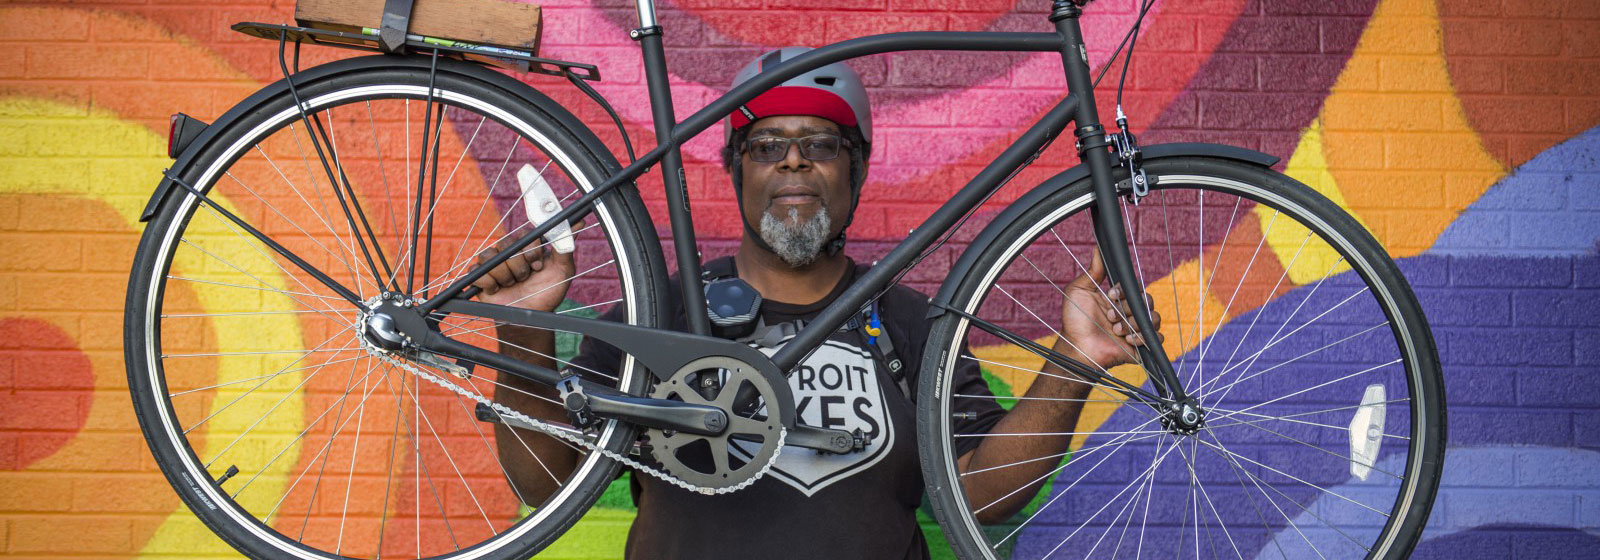 Entrepreneurs help revive Detroit with heart and grit